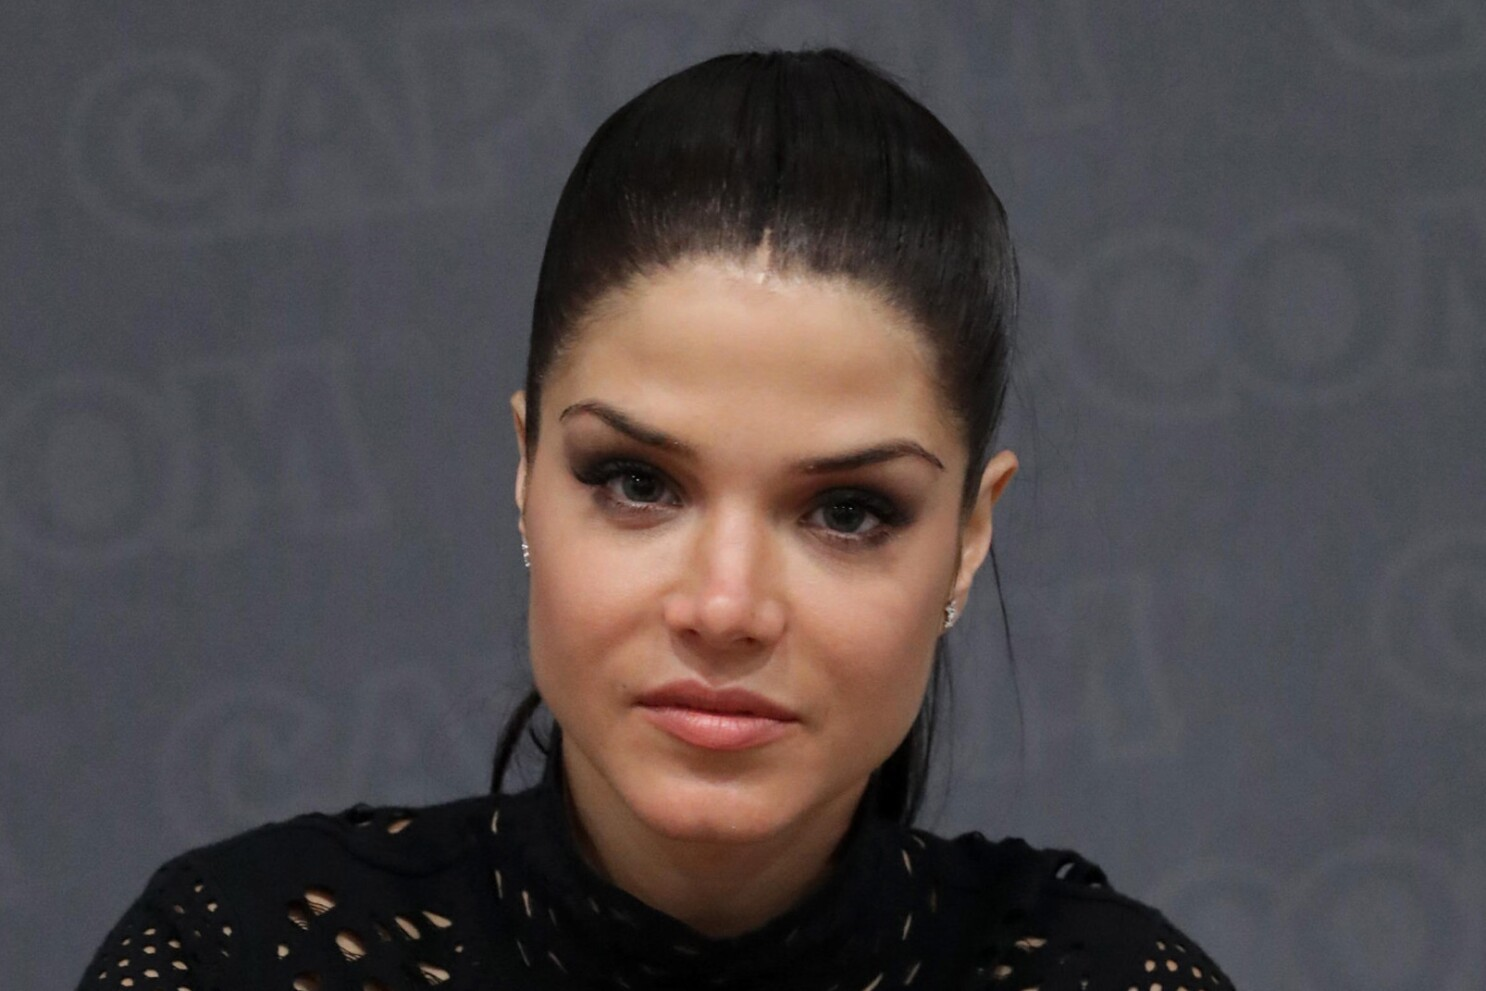 Hot marie pics avgeropoulos 75+ Hot